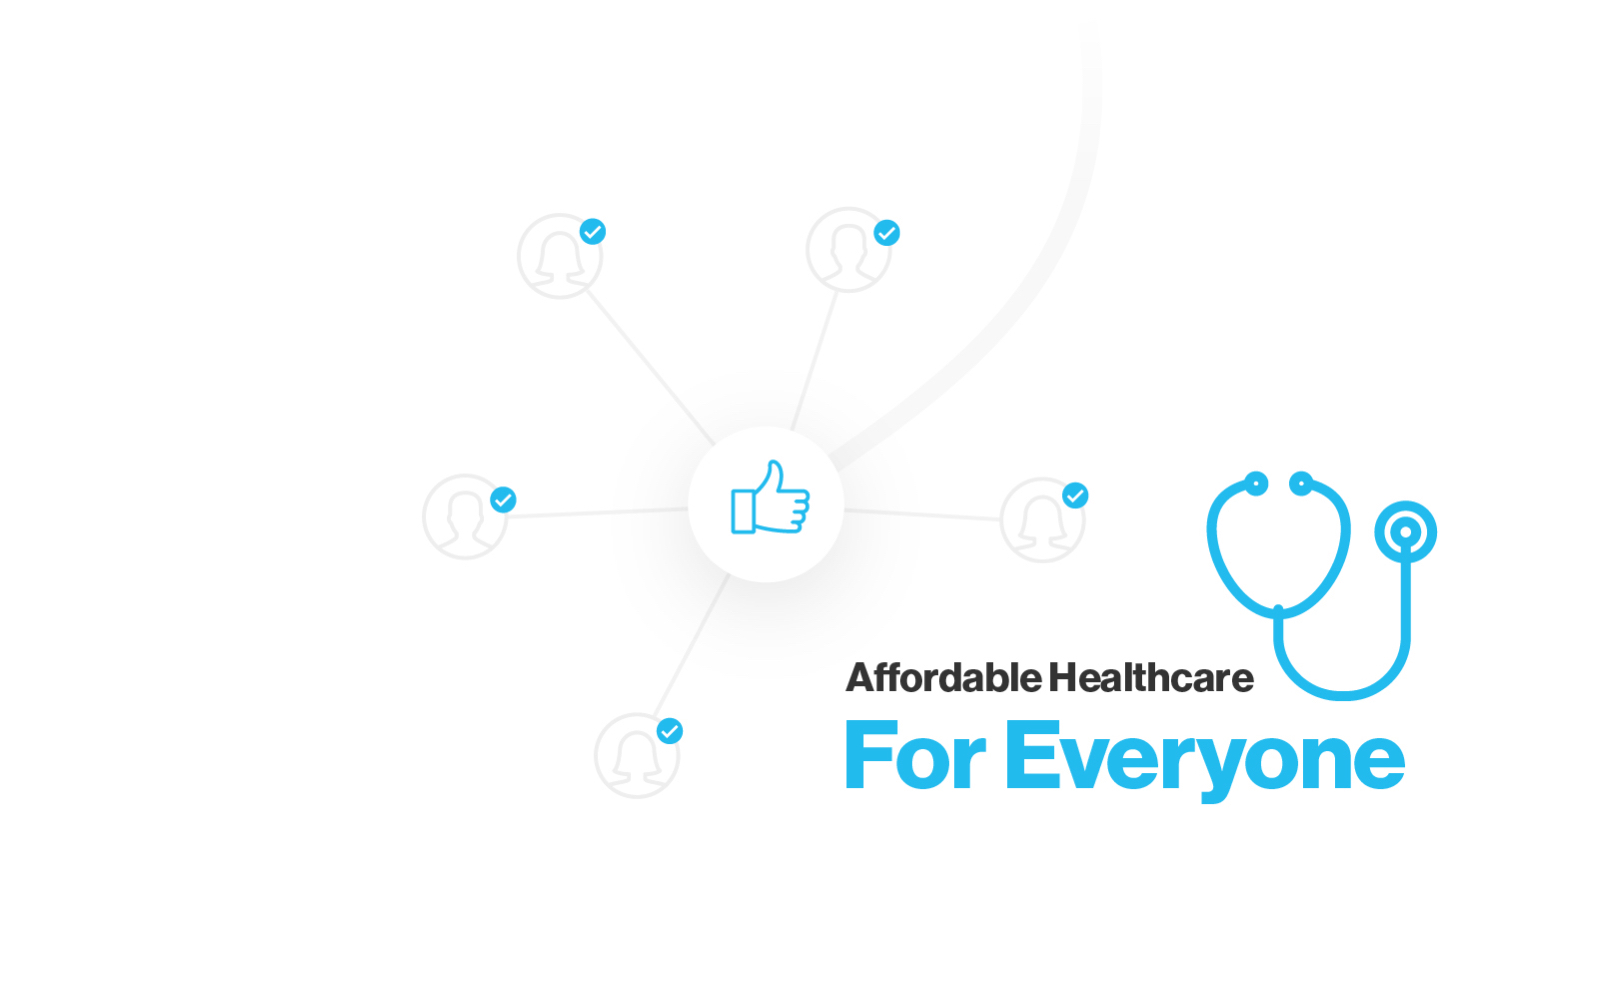 Illustration showing our goal of affordable healthcare for everyone.